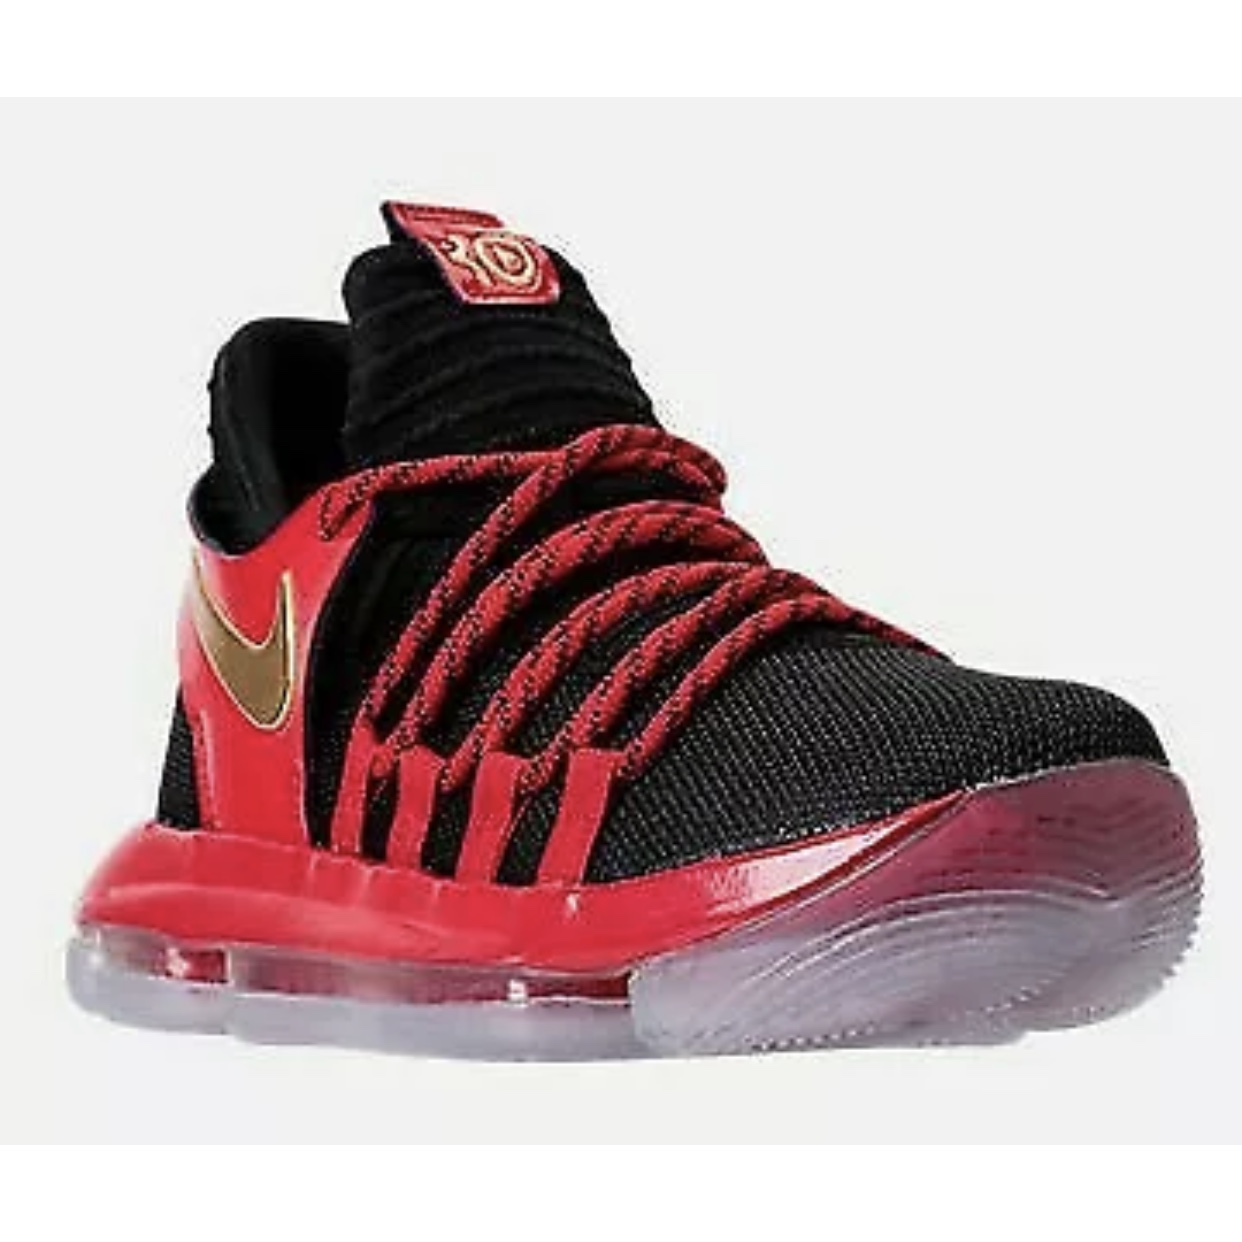 outlet store fbaa0 dc889 New Nike Zoom KD X LE 10 Black University Red... - Depop